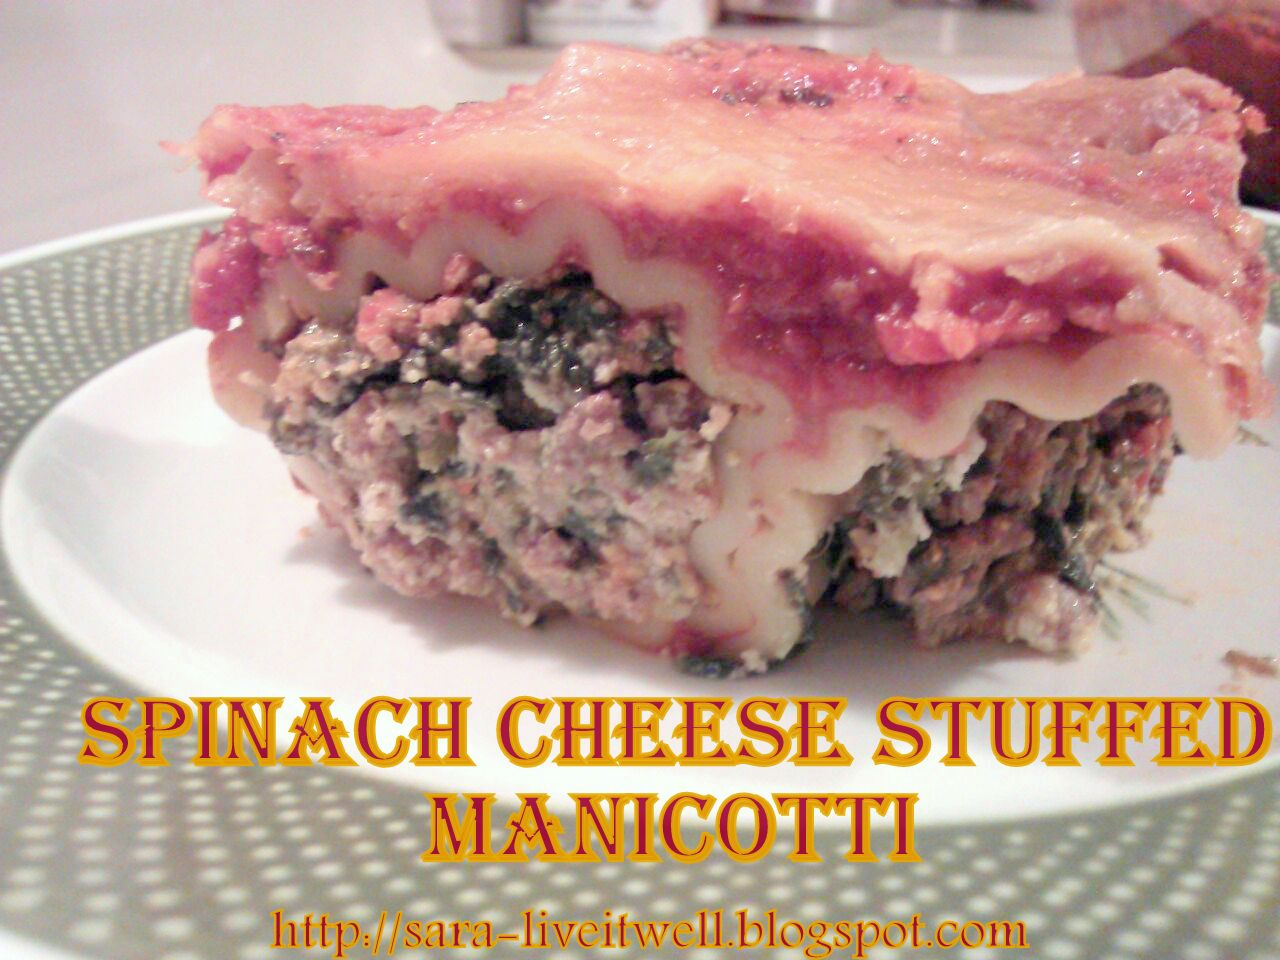 Live it well: Spinach Cheese Stuffed Manicotti